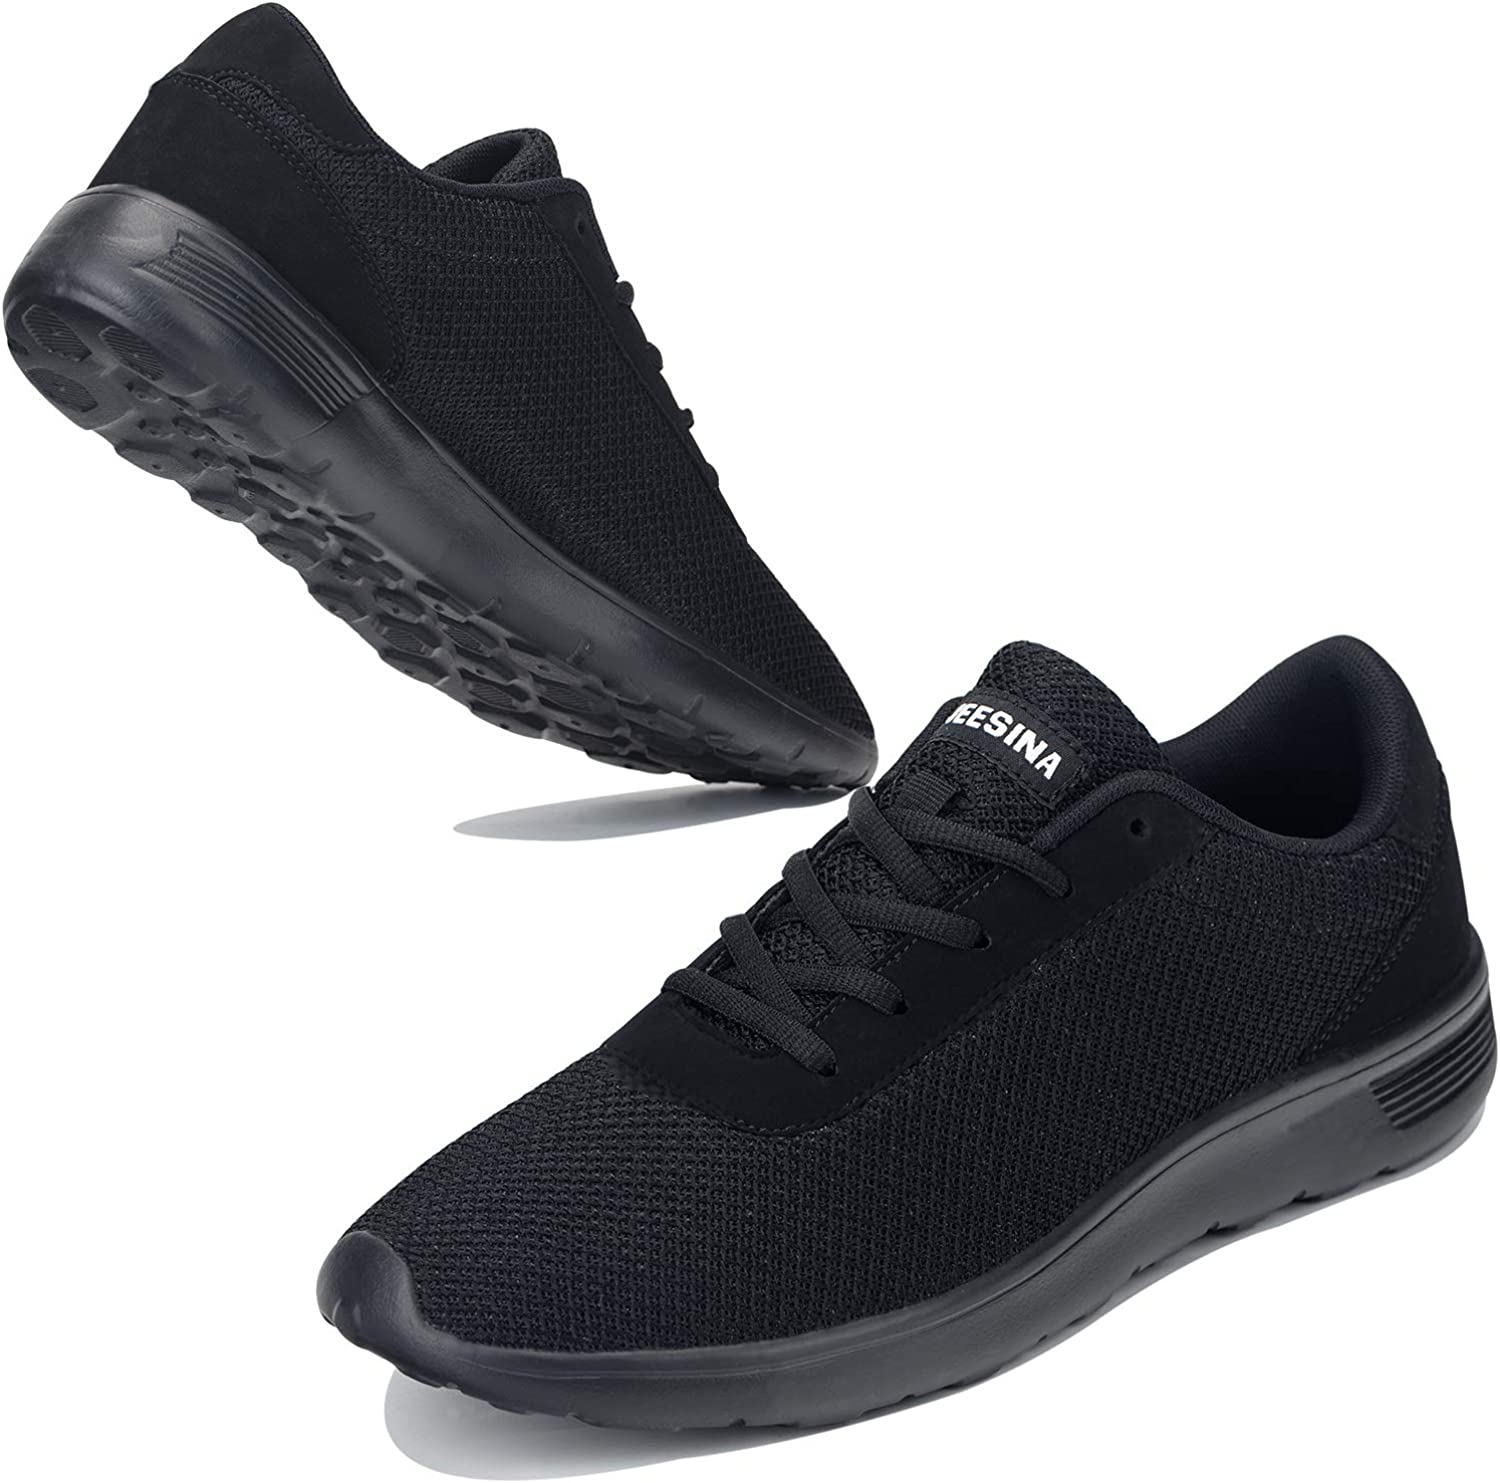 JEESINA Men's Running Shoes - Lightweight and Comfortable Slip-On Breathable Walking Sneakers